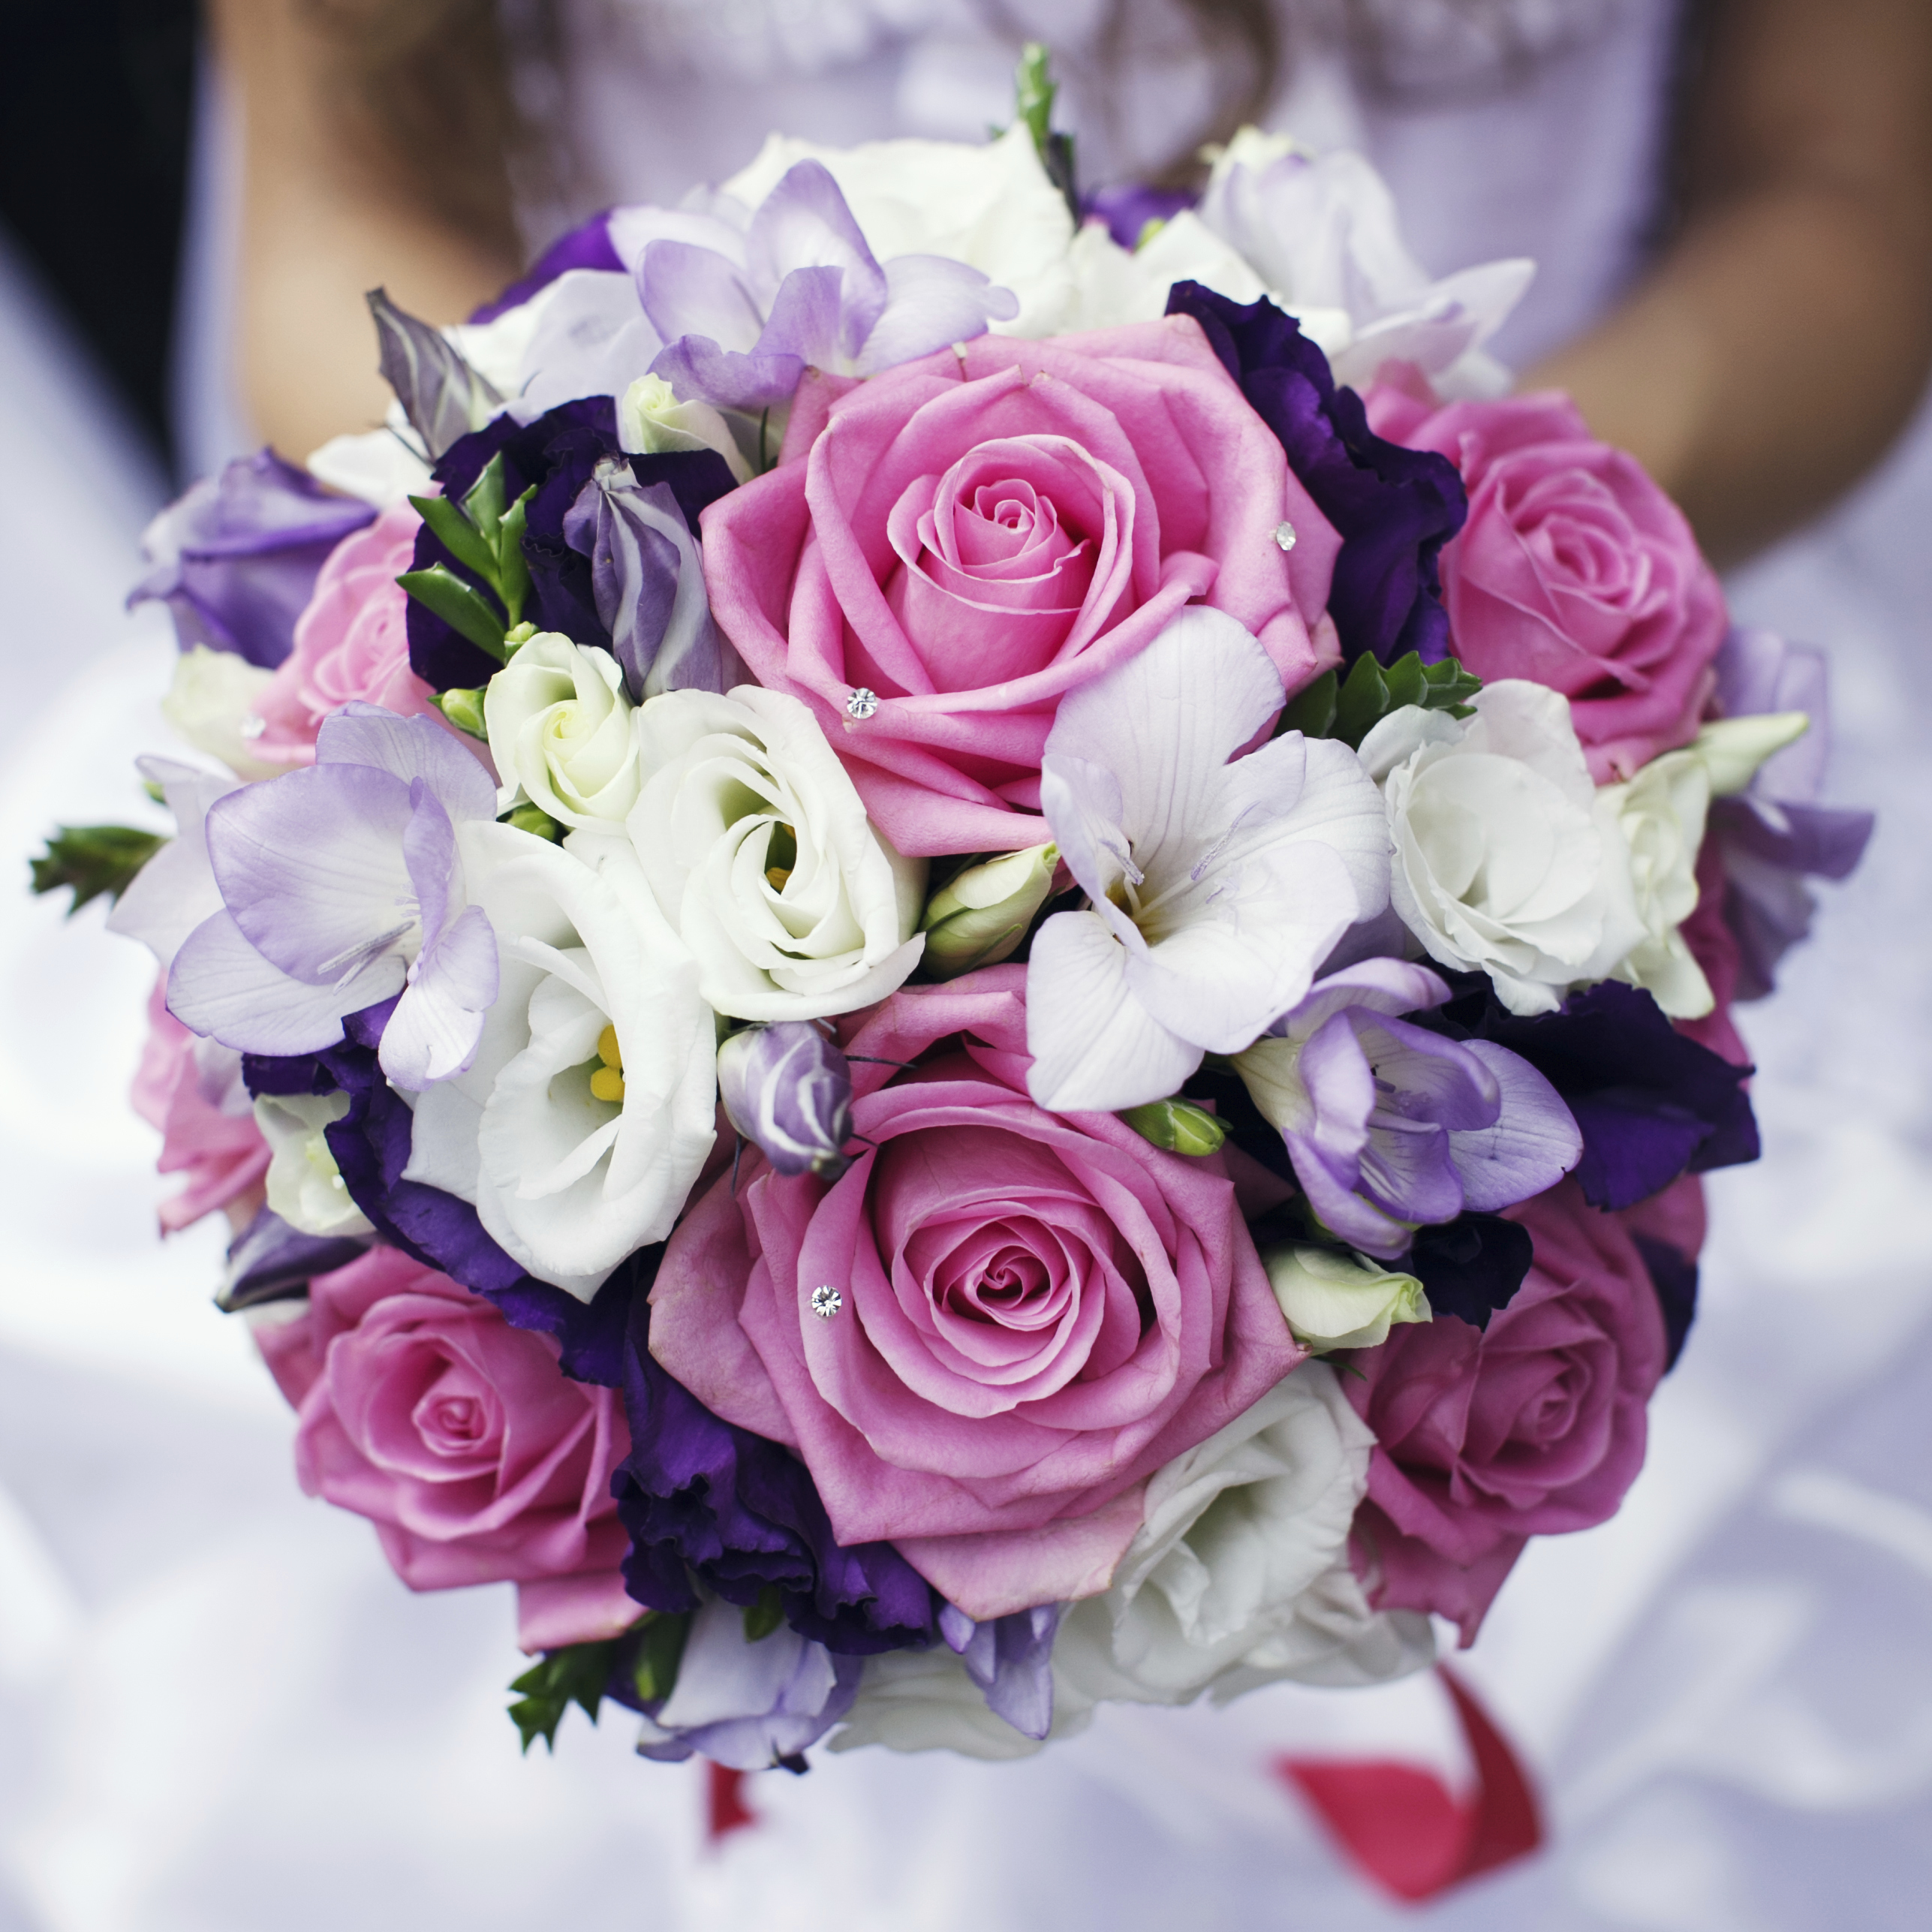 Wedding flowers - Articles - Easy Weddings